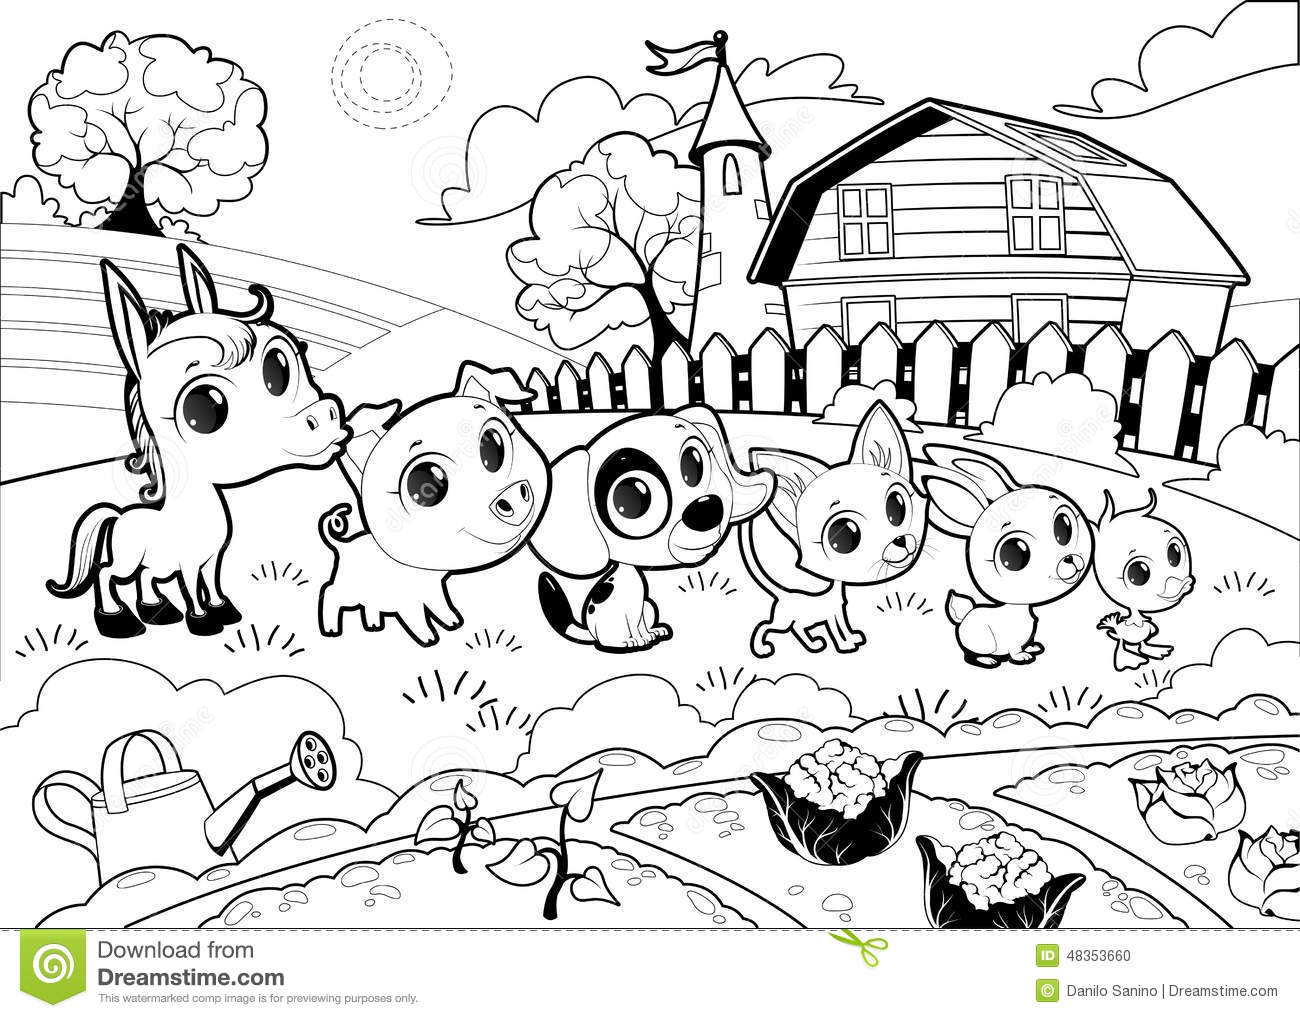 Funny Farm Animals In The Garden Stock Vector - Illustration of ... for Farmhouse Cartoon Black And White  584dqh